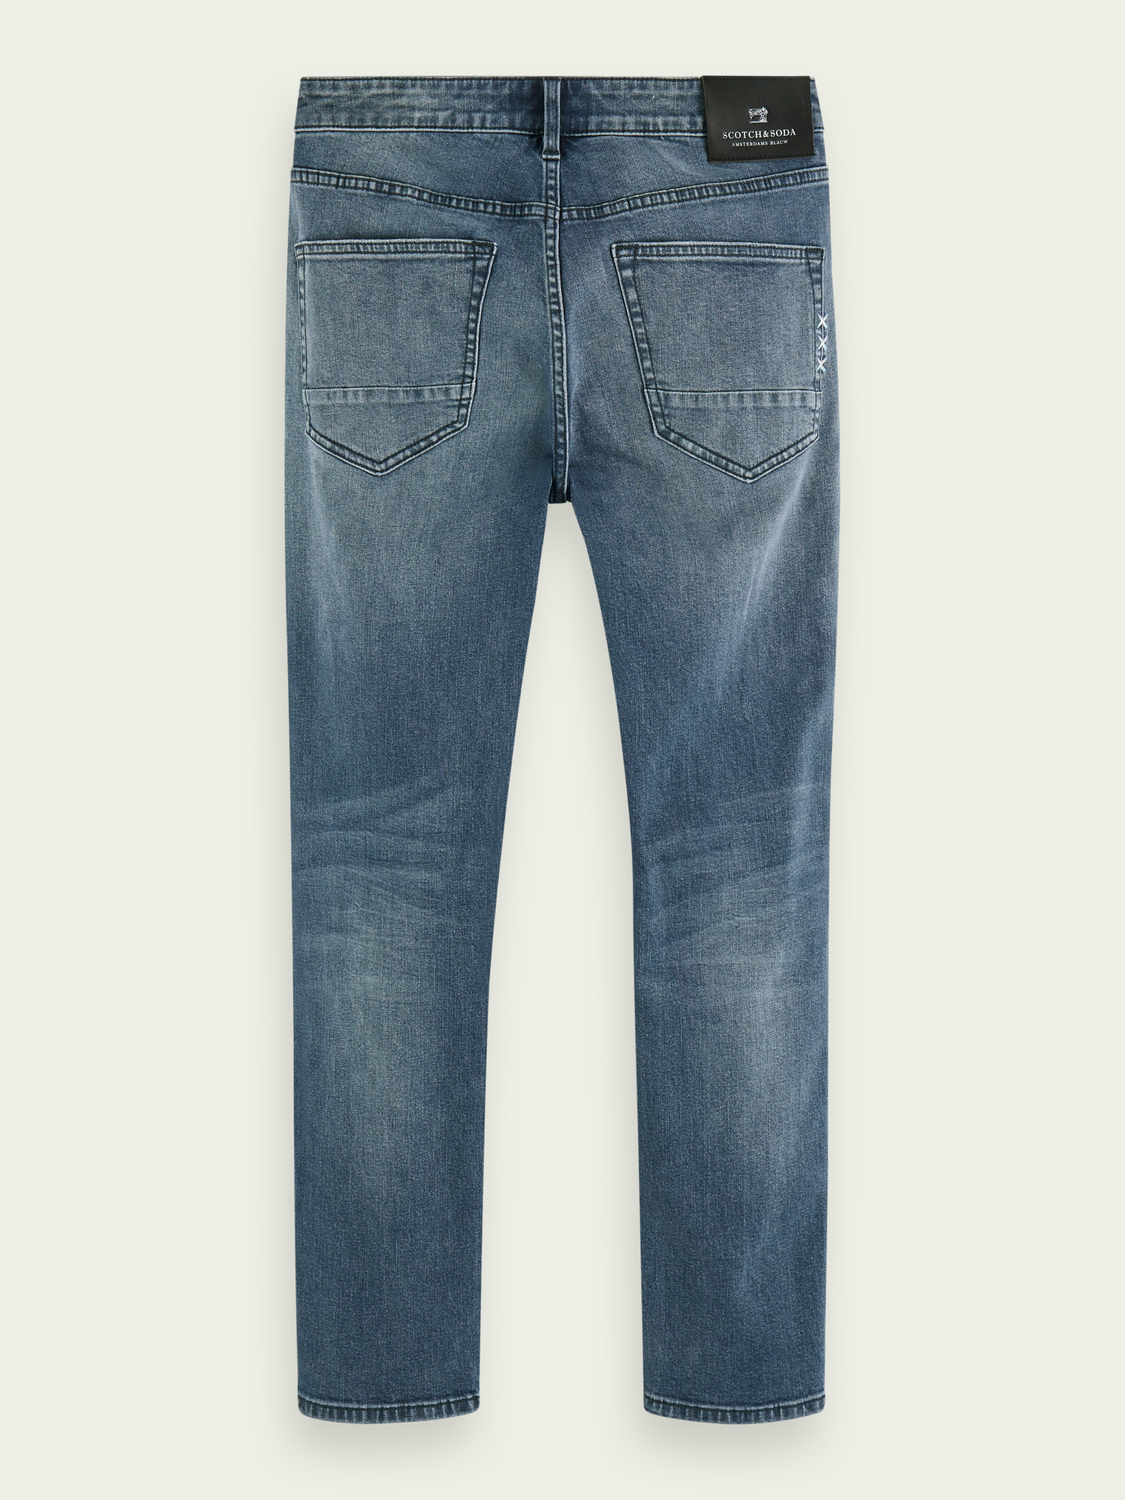 Herrar Skim - Moonlight | Super slim fit